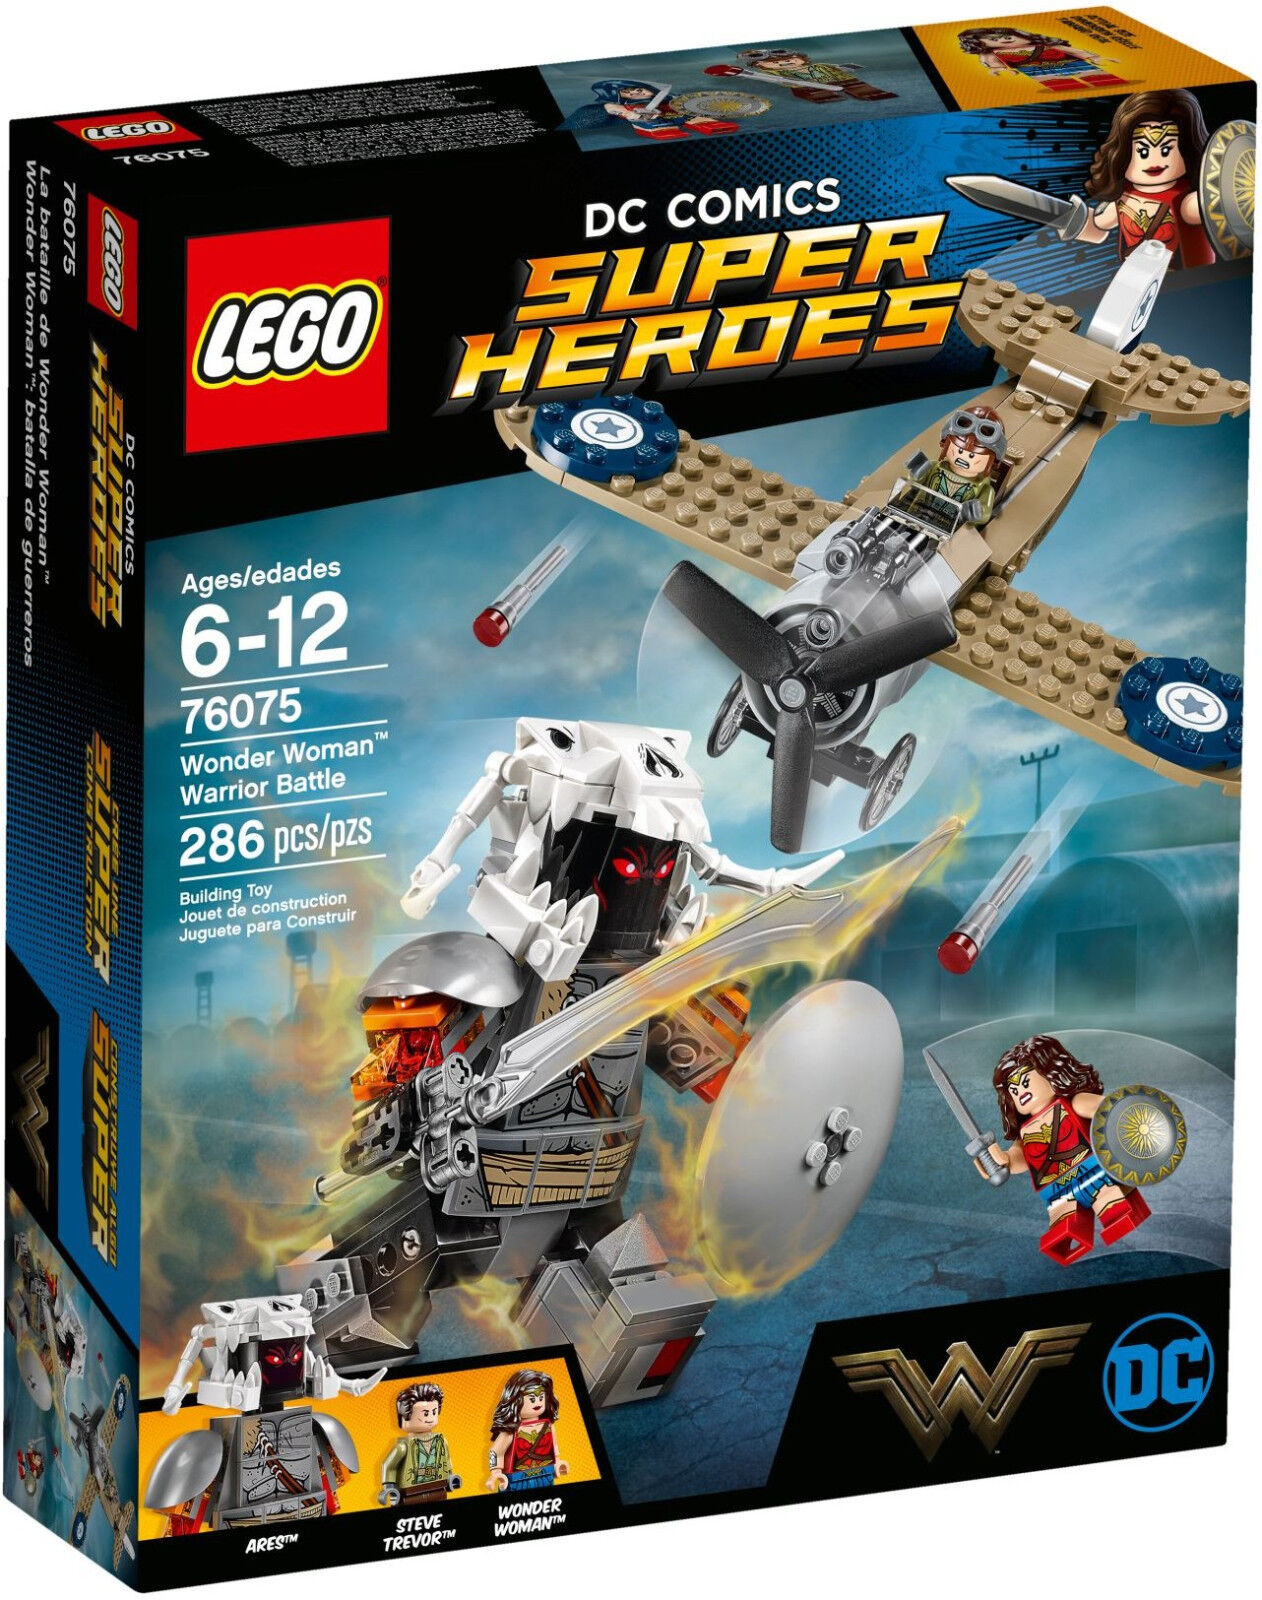 LEGO DC Super Heroes - 76075 Wonder Woman Warrior Battle con Steve-NUOVO & OVP